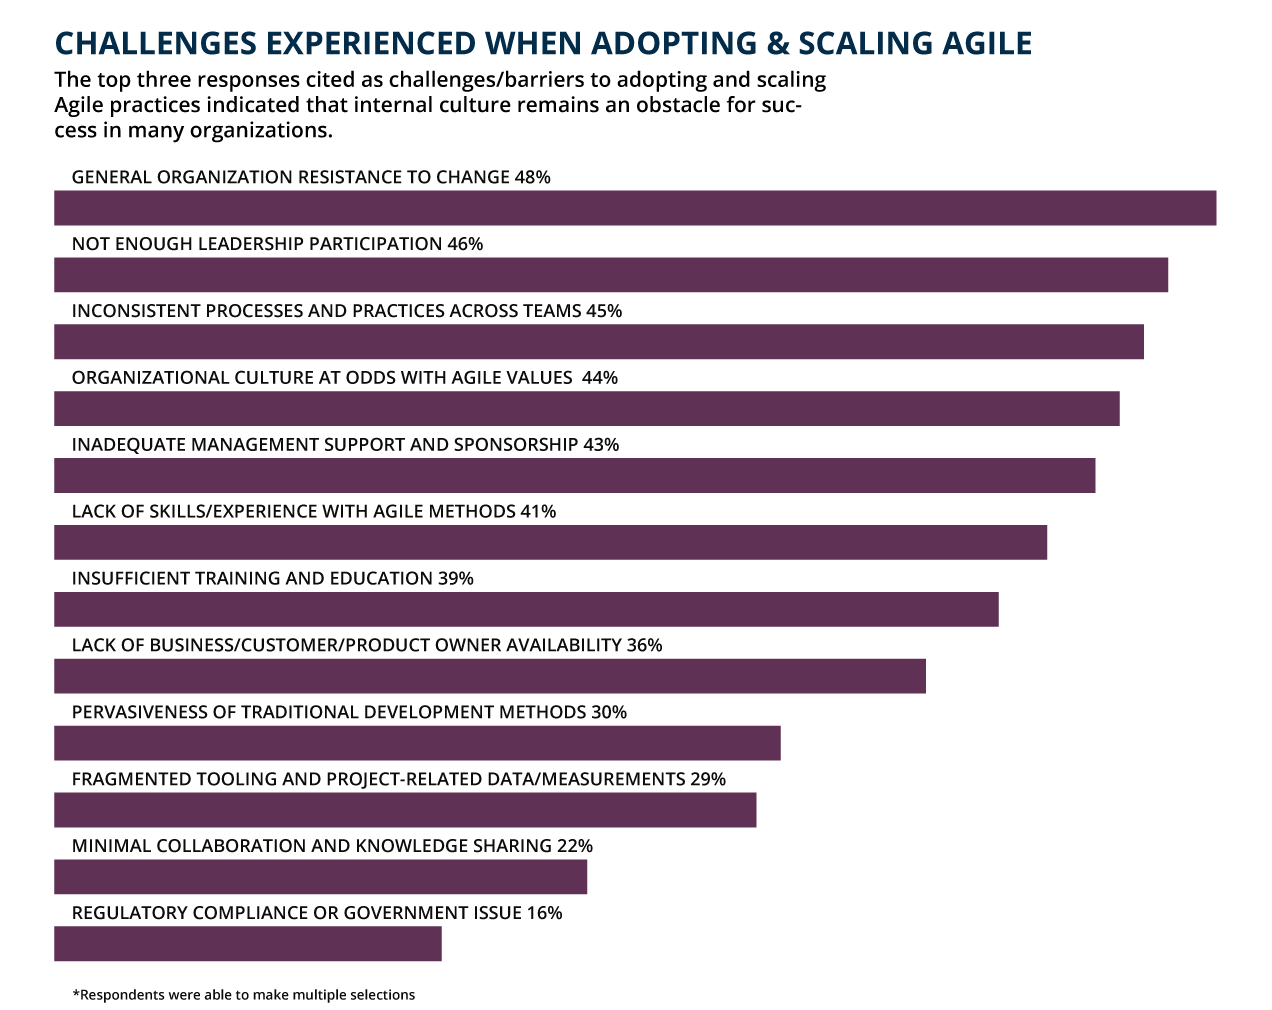 SAFe adoption challenges – 14th Annual State of Agile report by VersionOne